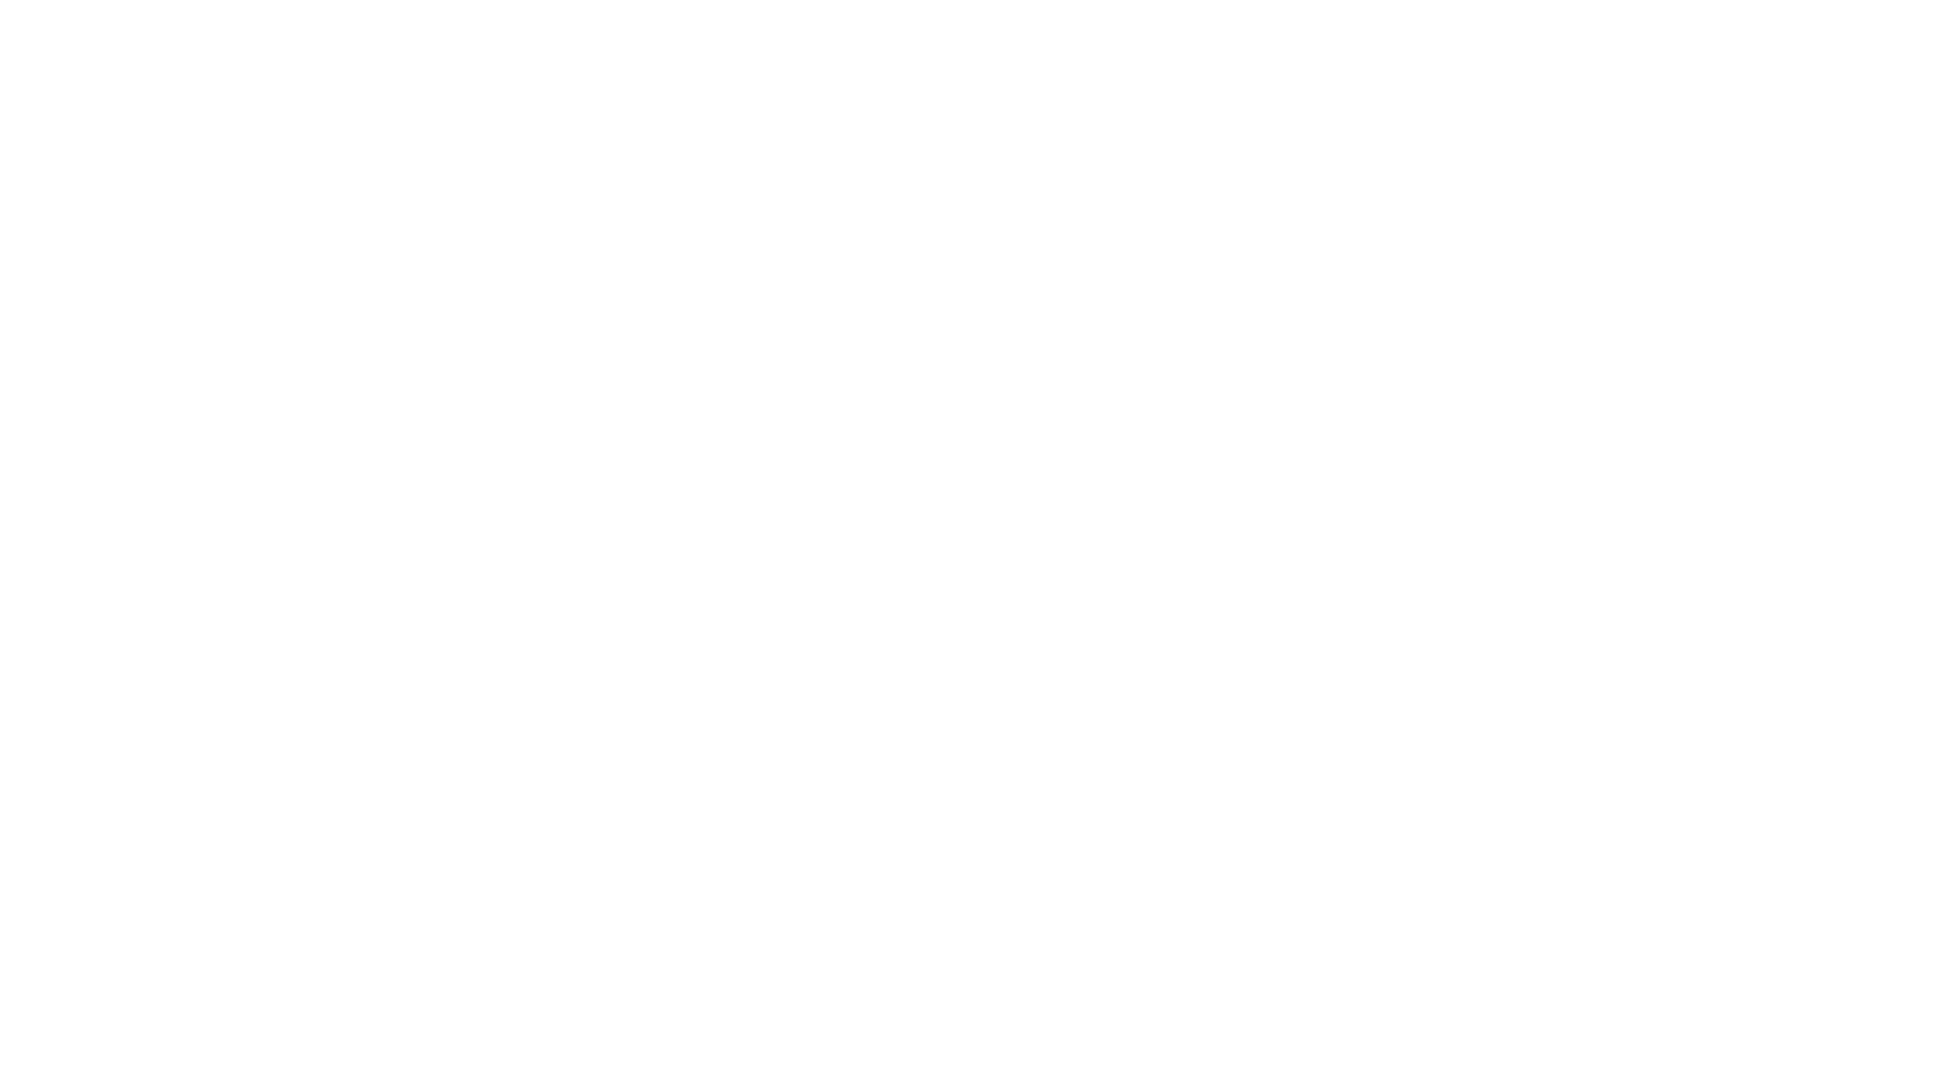 The Graystone Seattle